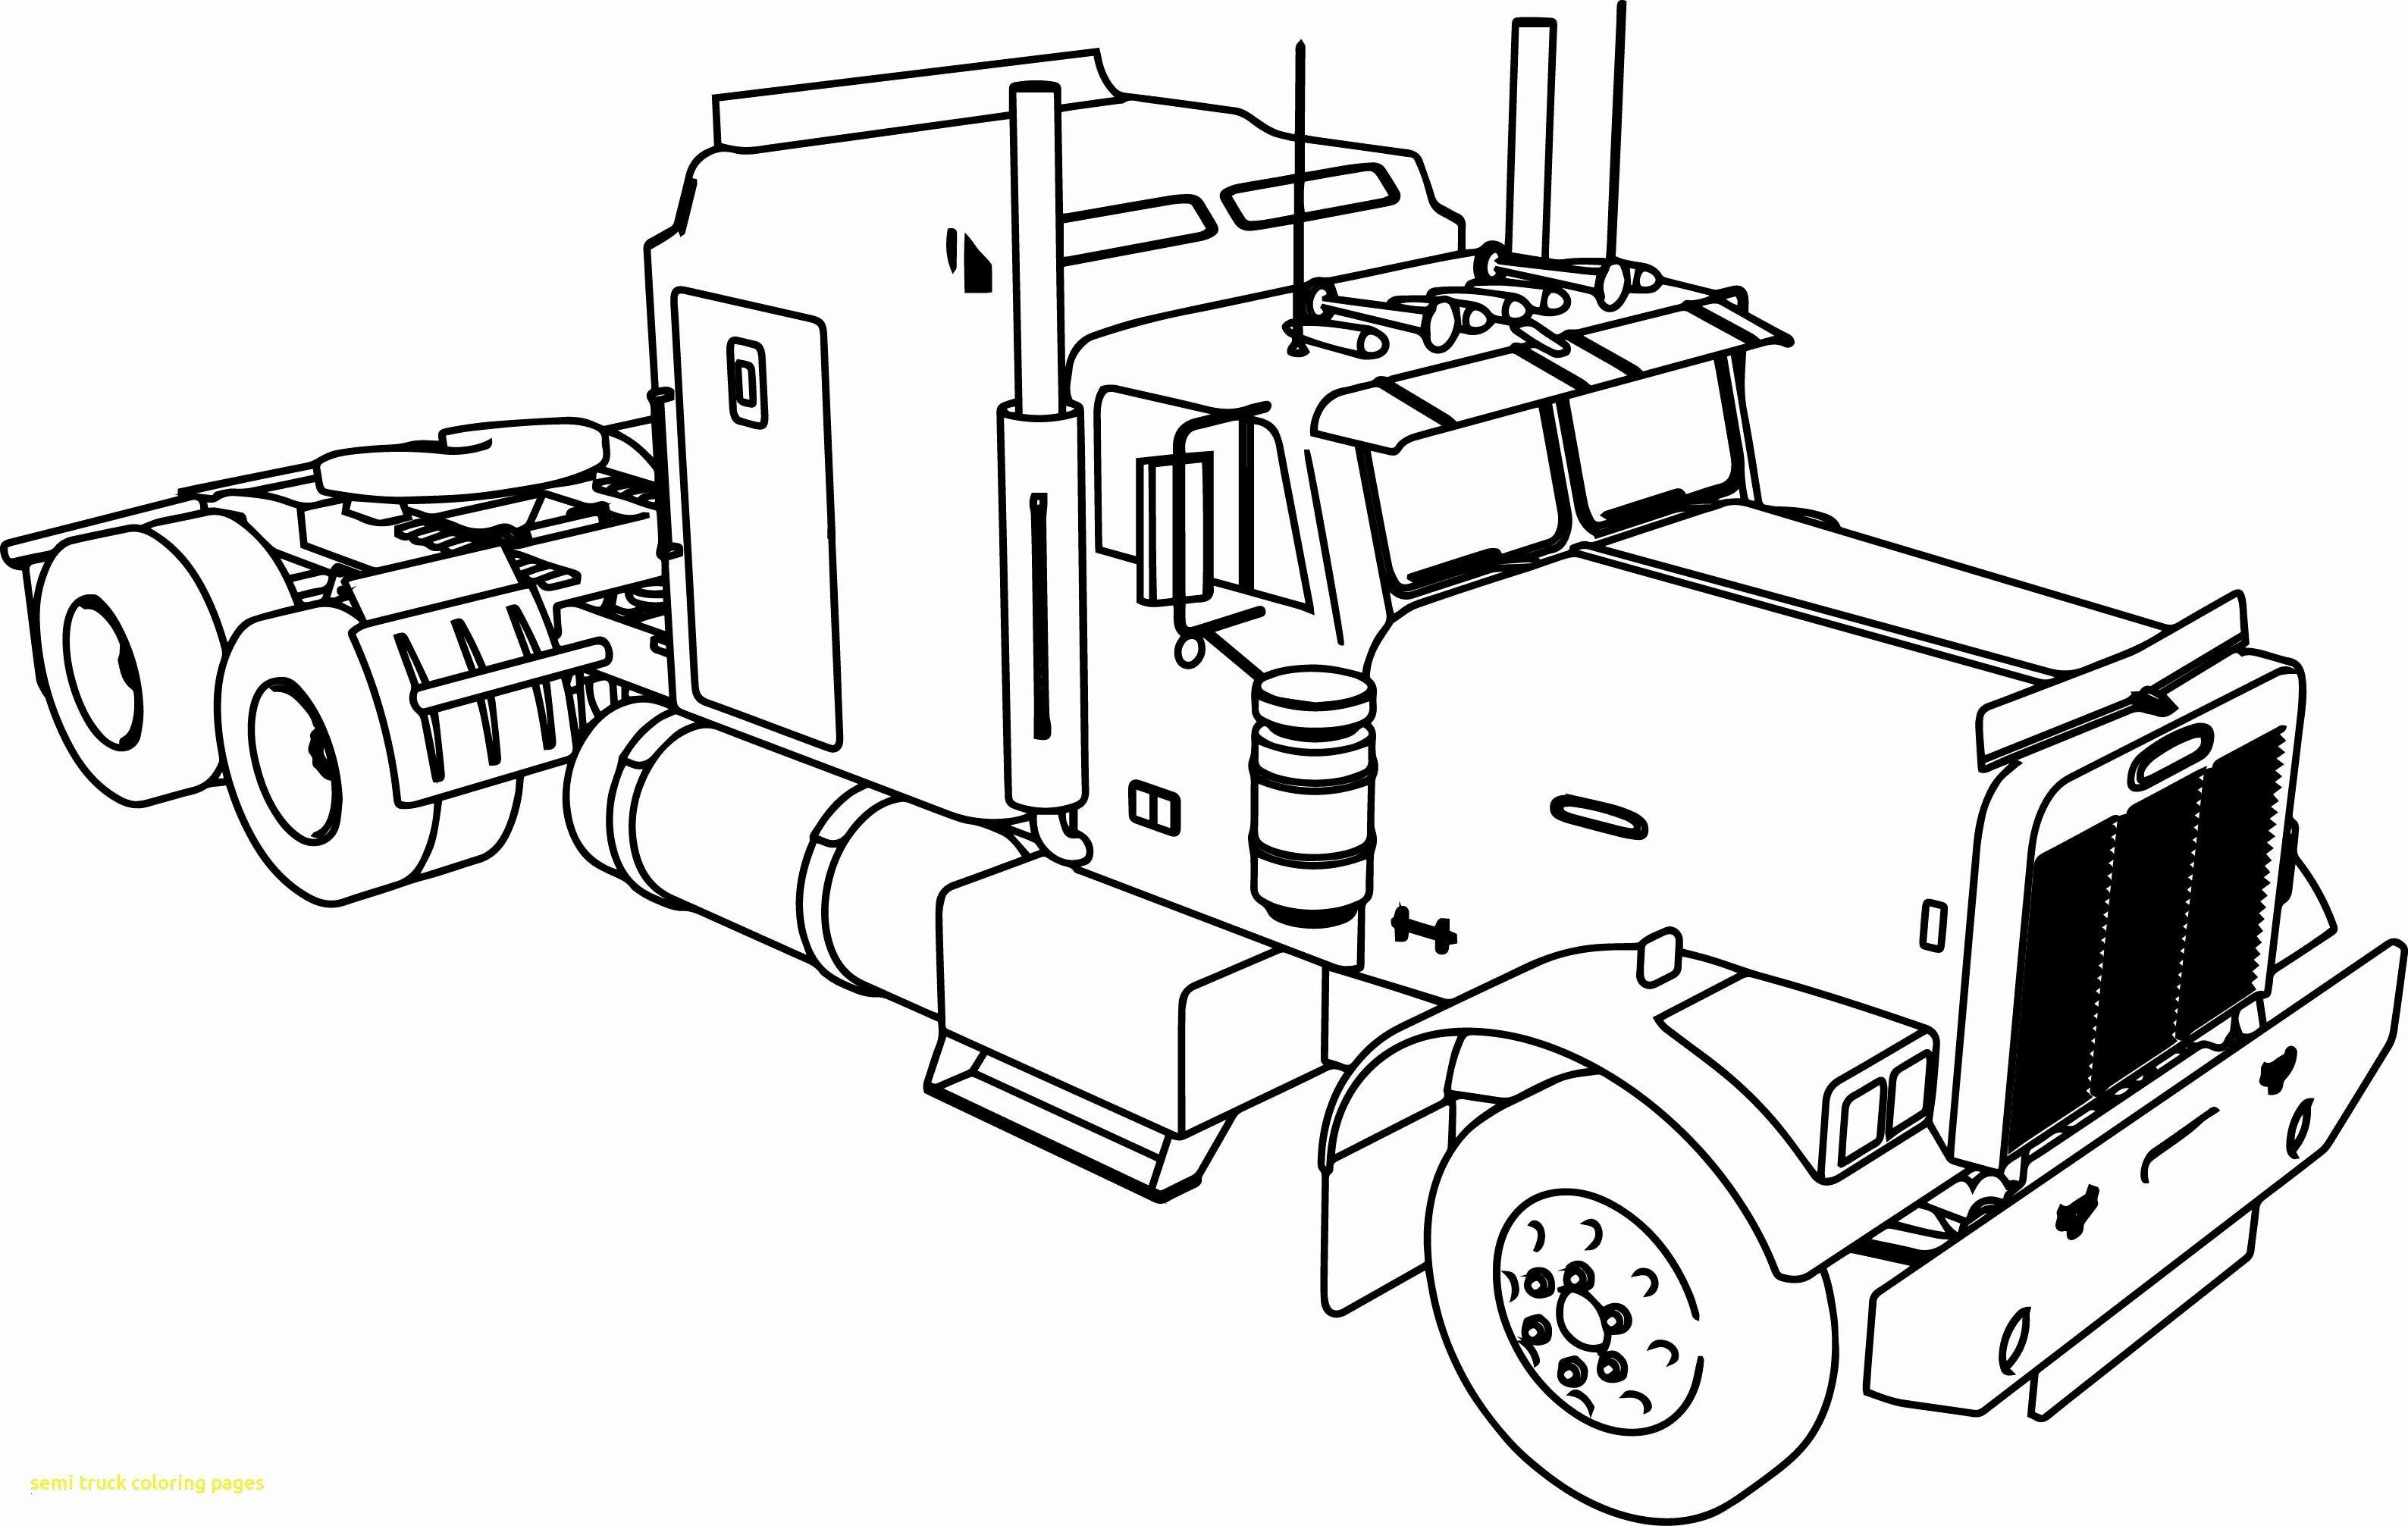 Semi Truck Coloring Pages Fresh Lovely Tractor And Trailer Coloring Pages Lovespells Truck Coloring Pages Tractor Coloring Pages Cars Coloring Pages